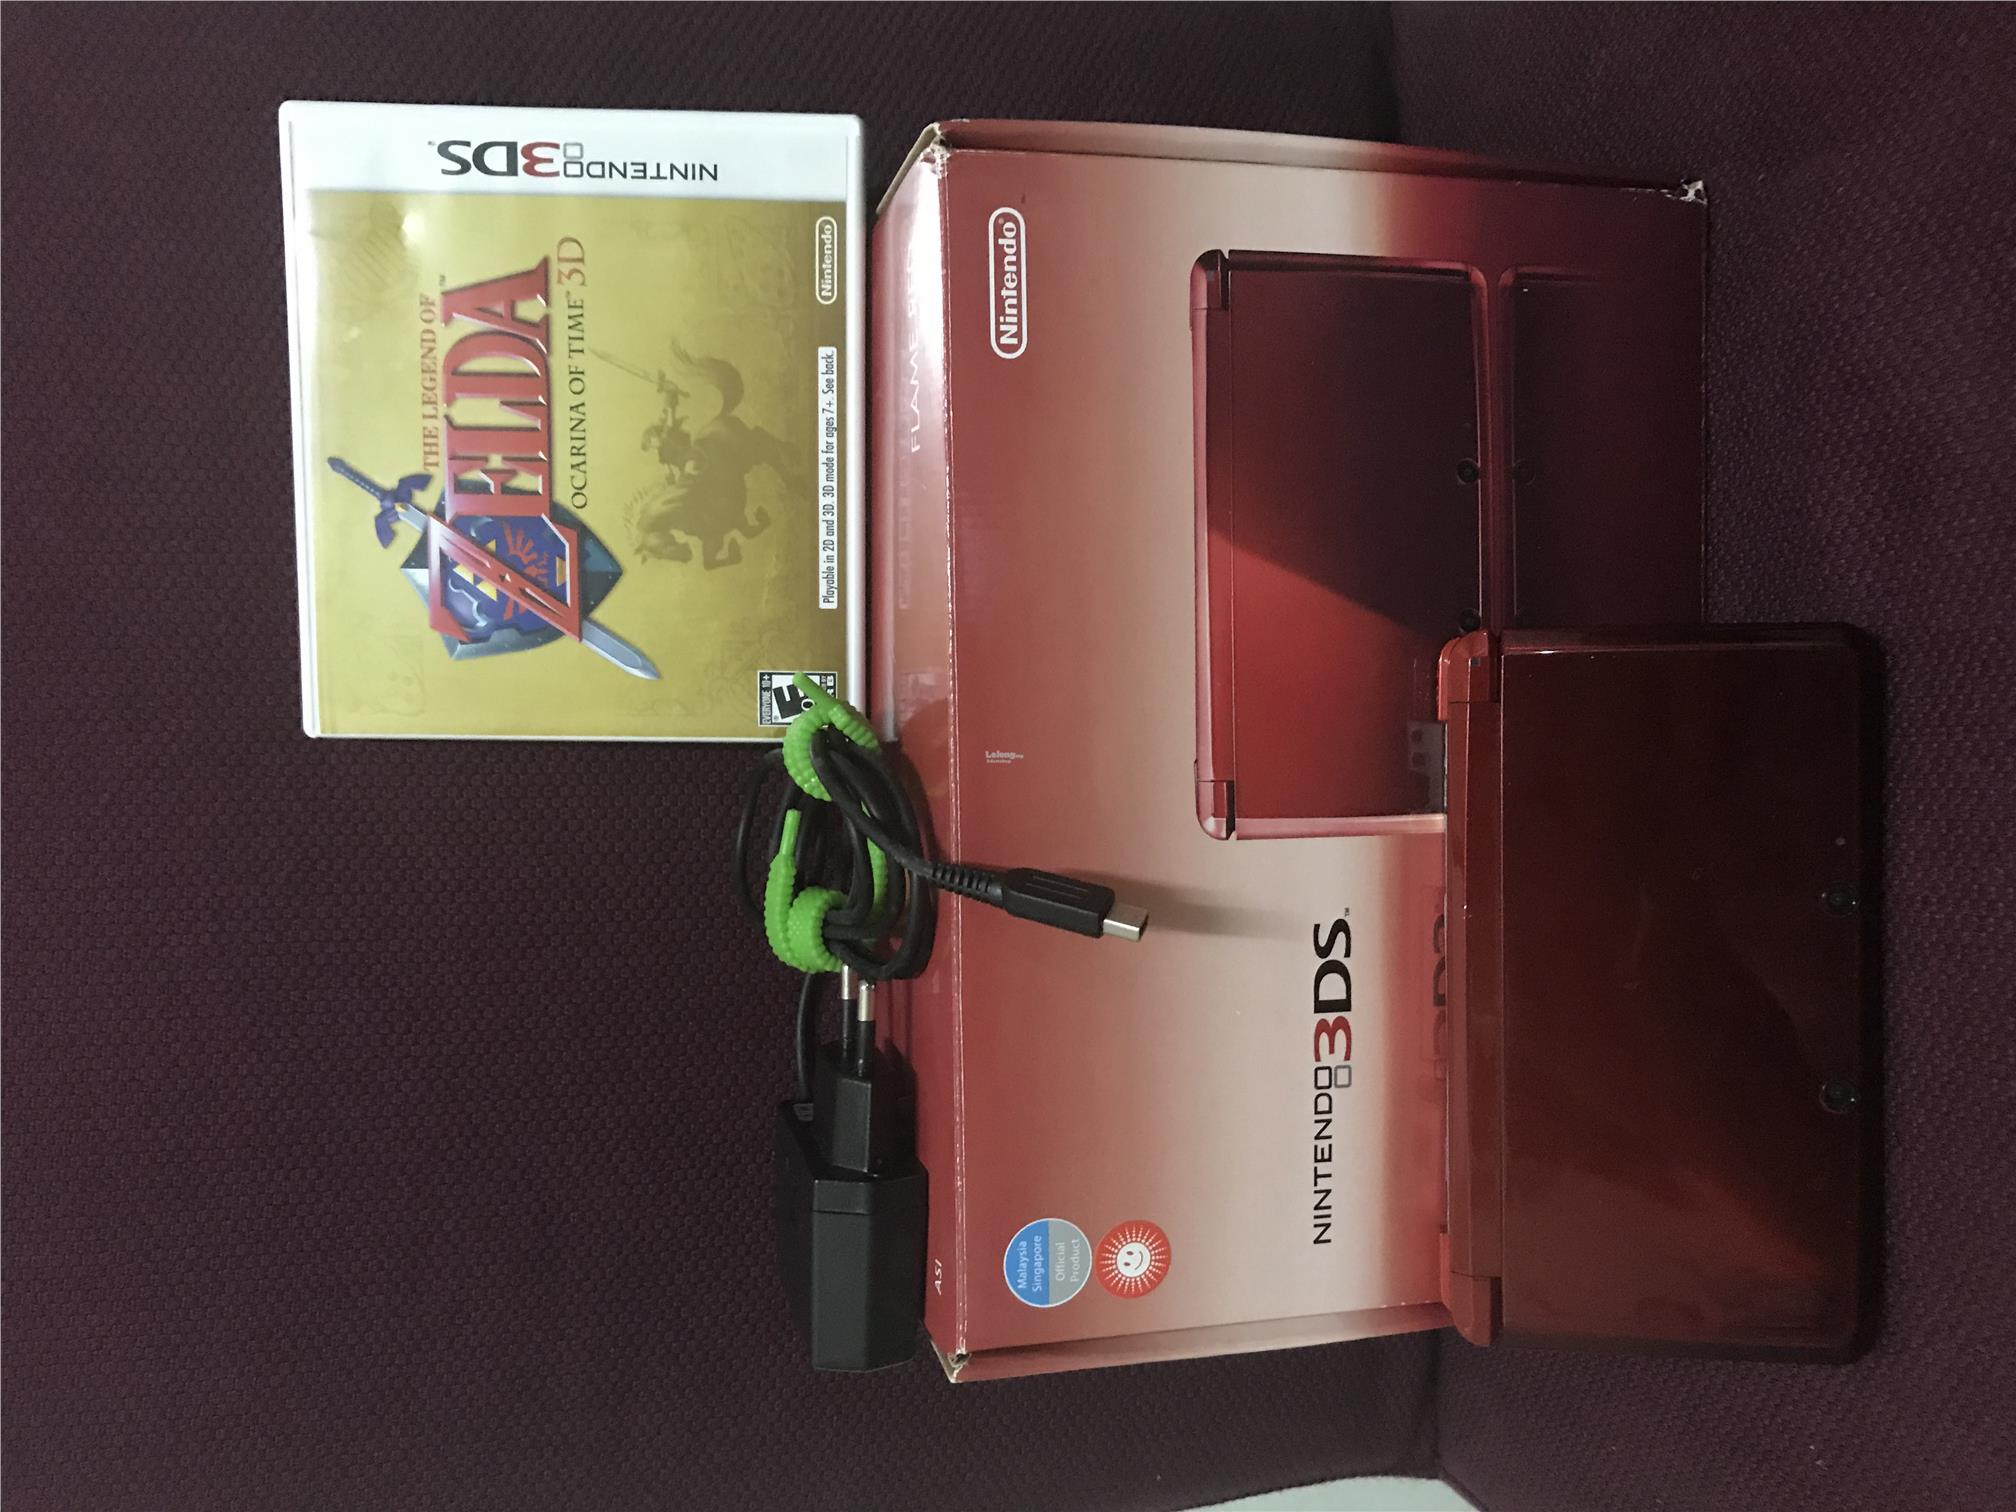 Nintendo 3DS - Flame Red Color (used)